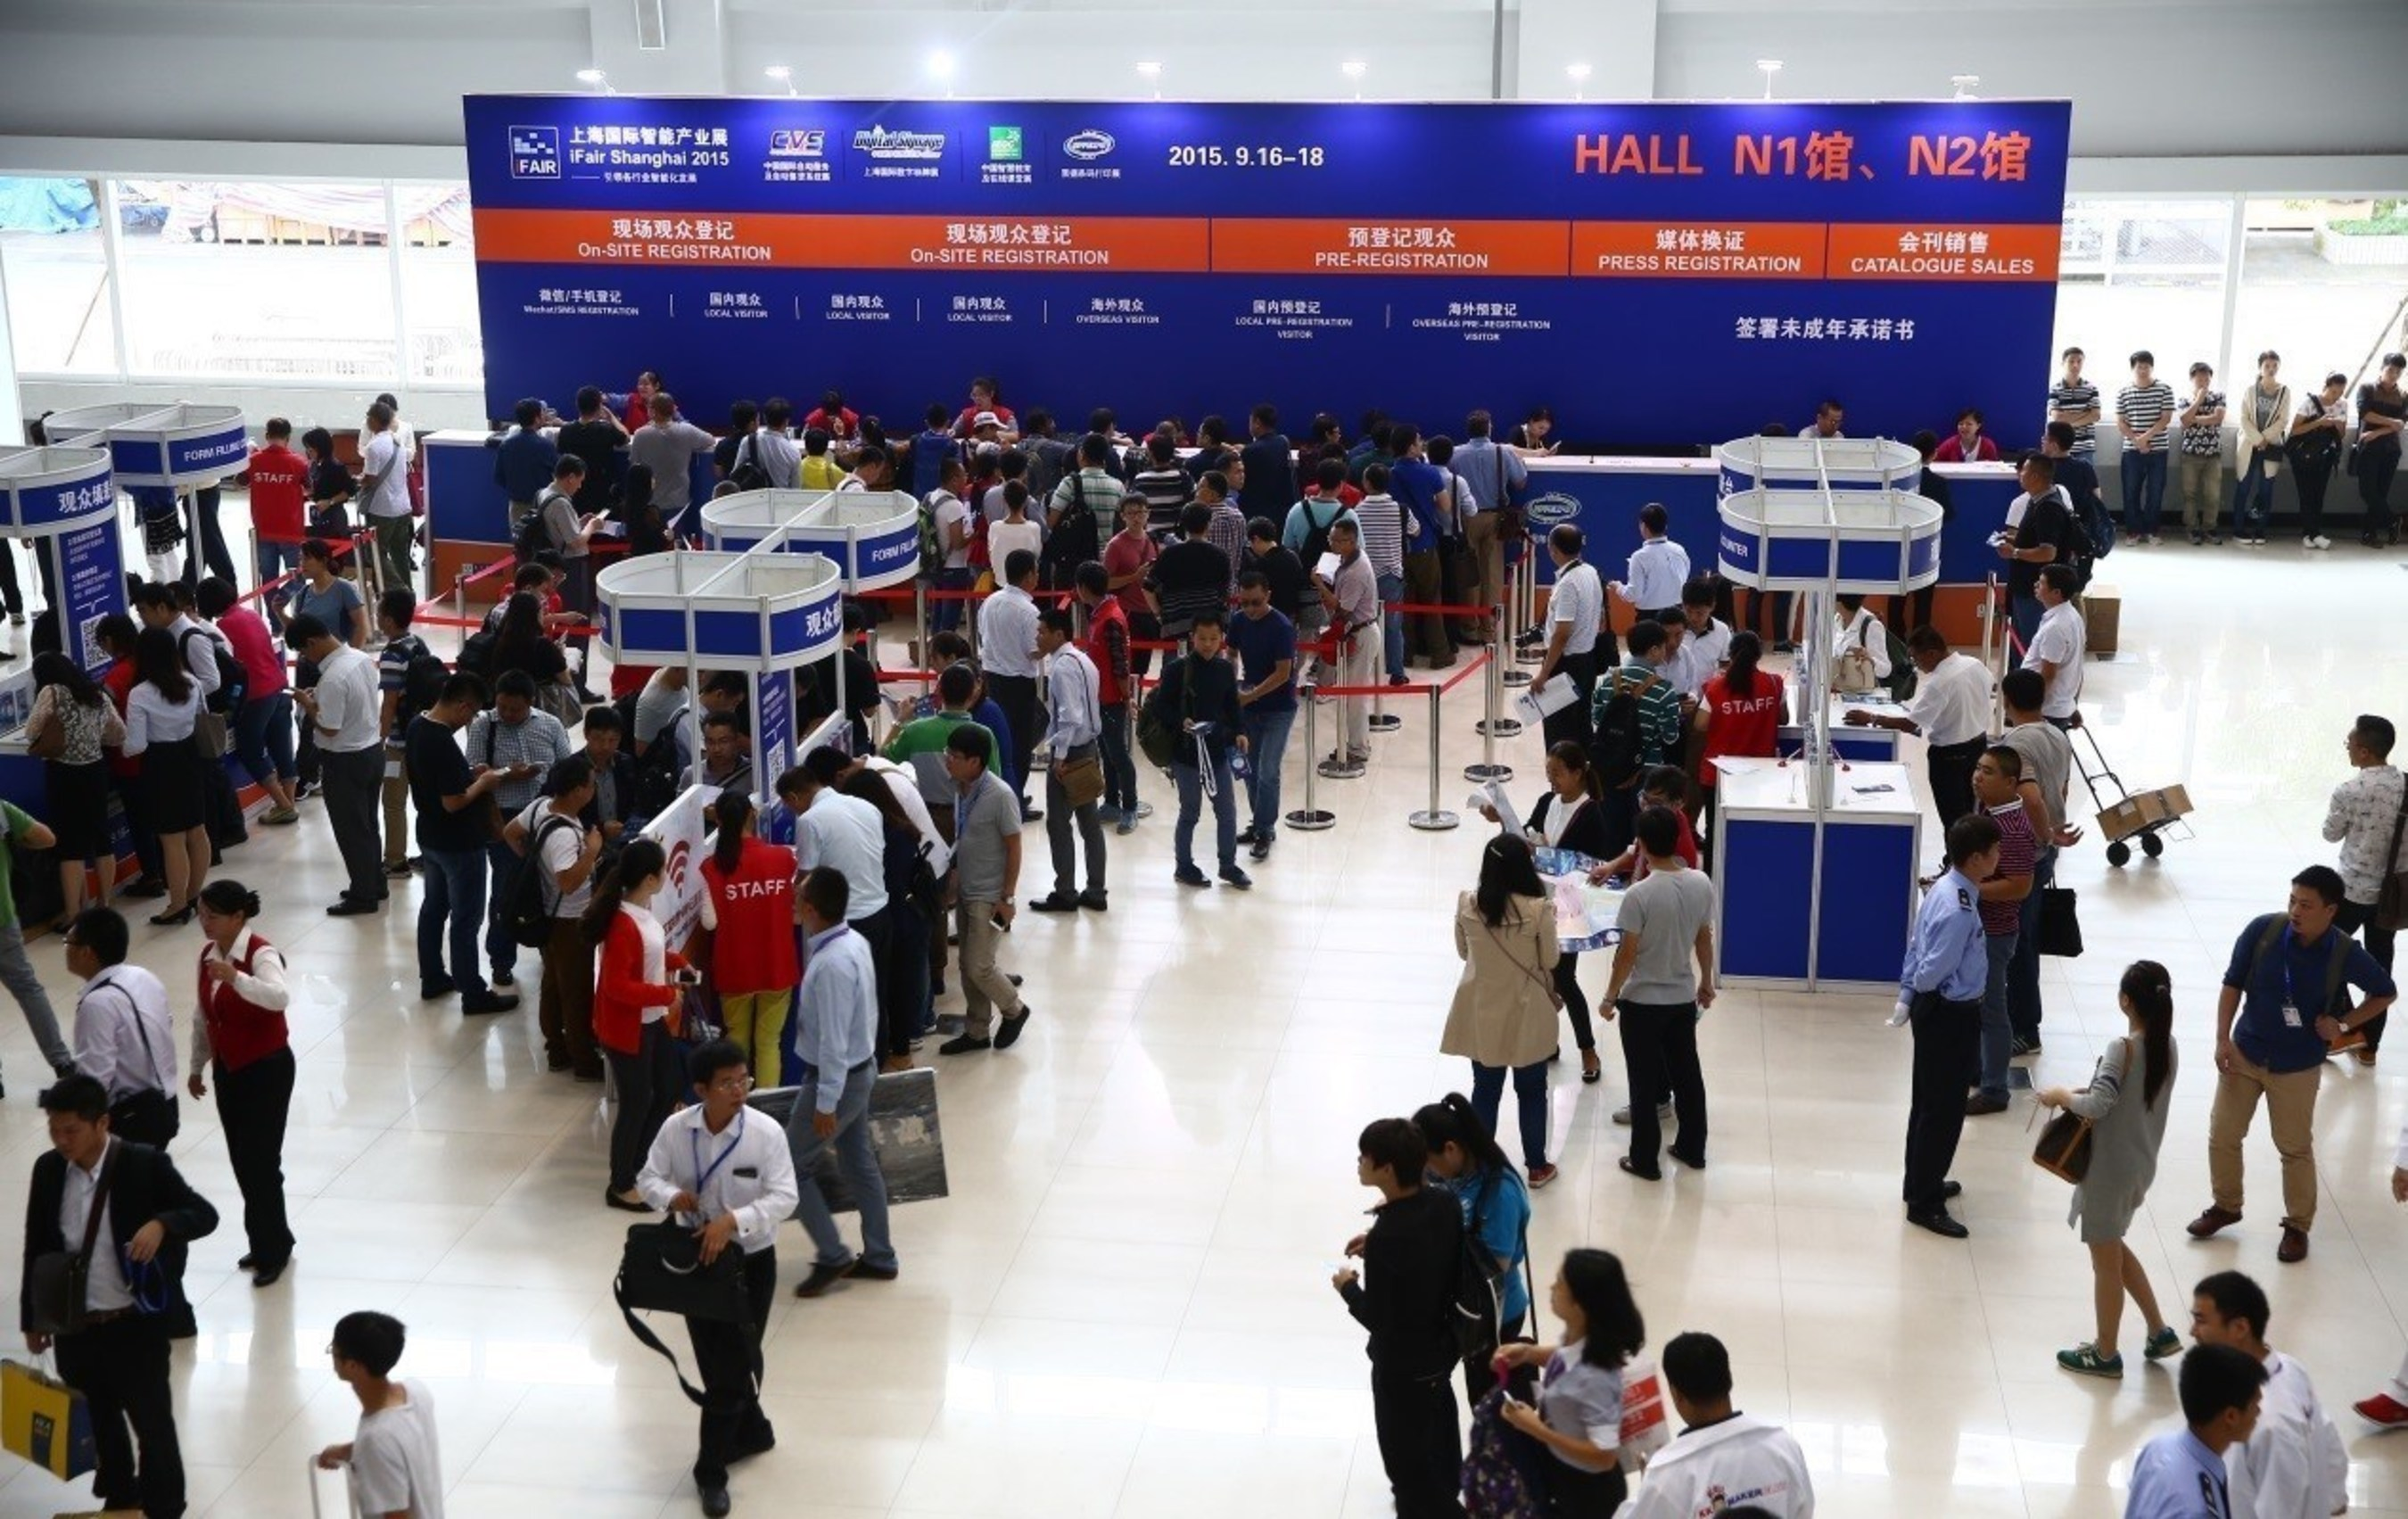 The 12th China International Self-service, Kiosk & Vending Show